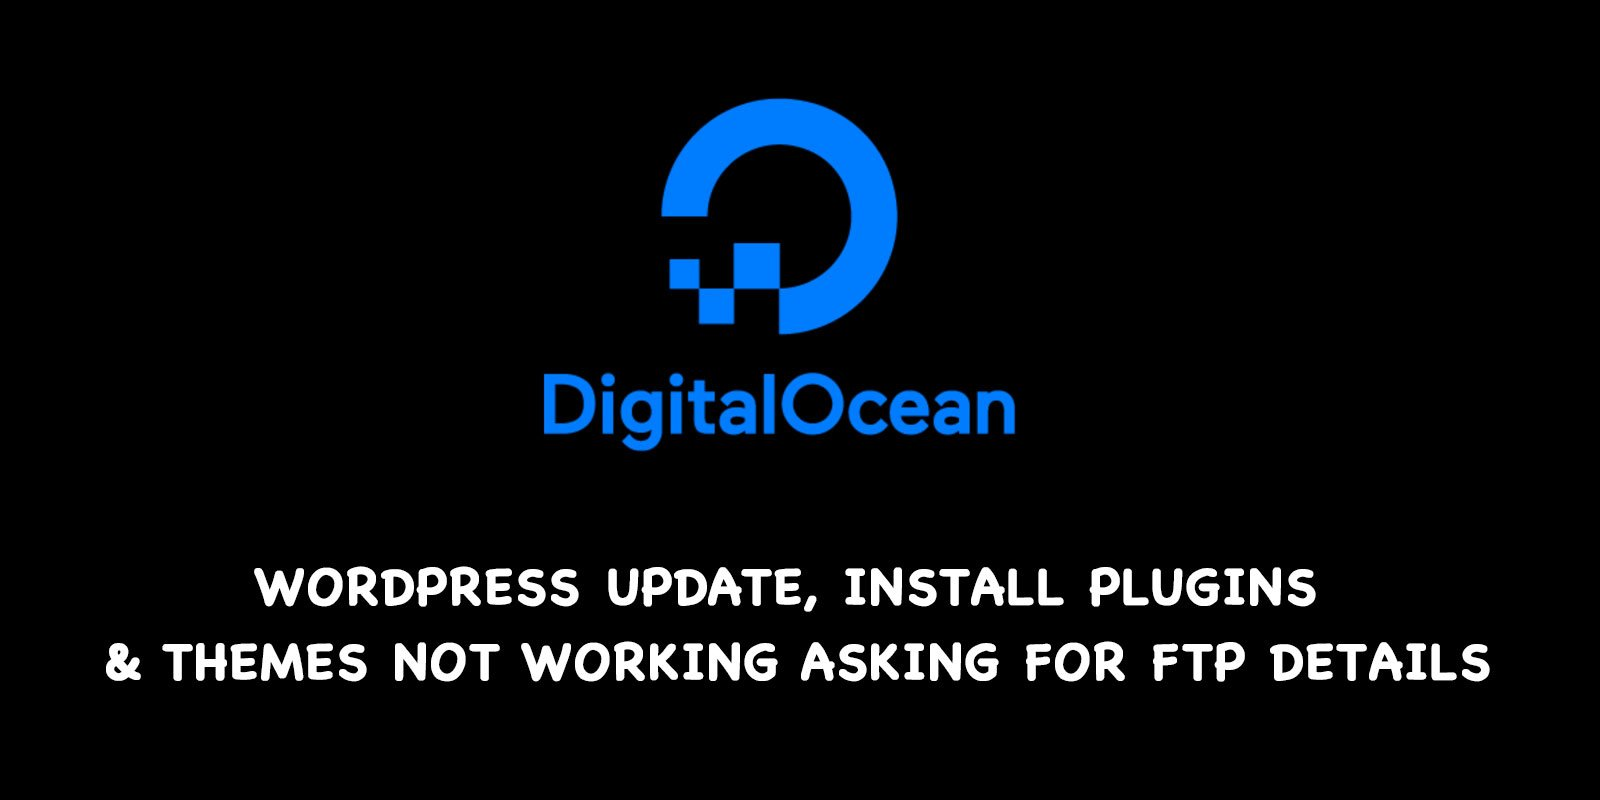 Digitalocean:  WordPress Update, Install Plugins & Themes not working asking for FTP details